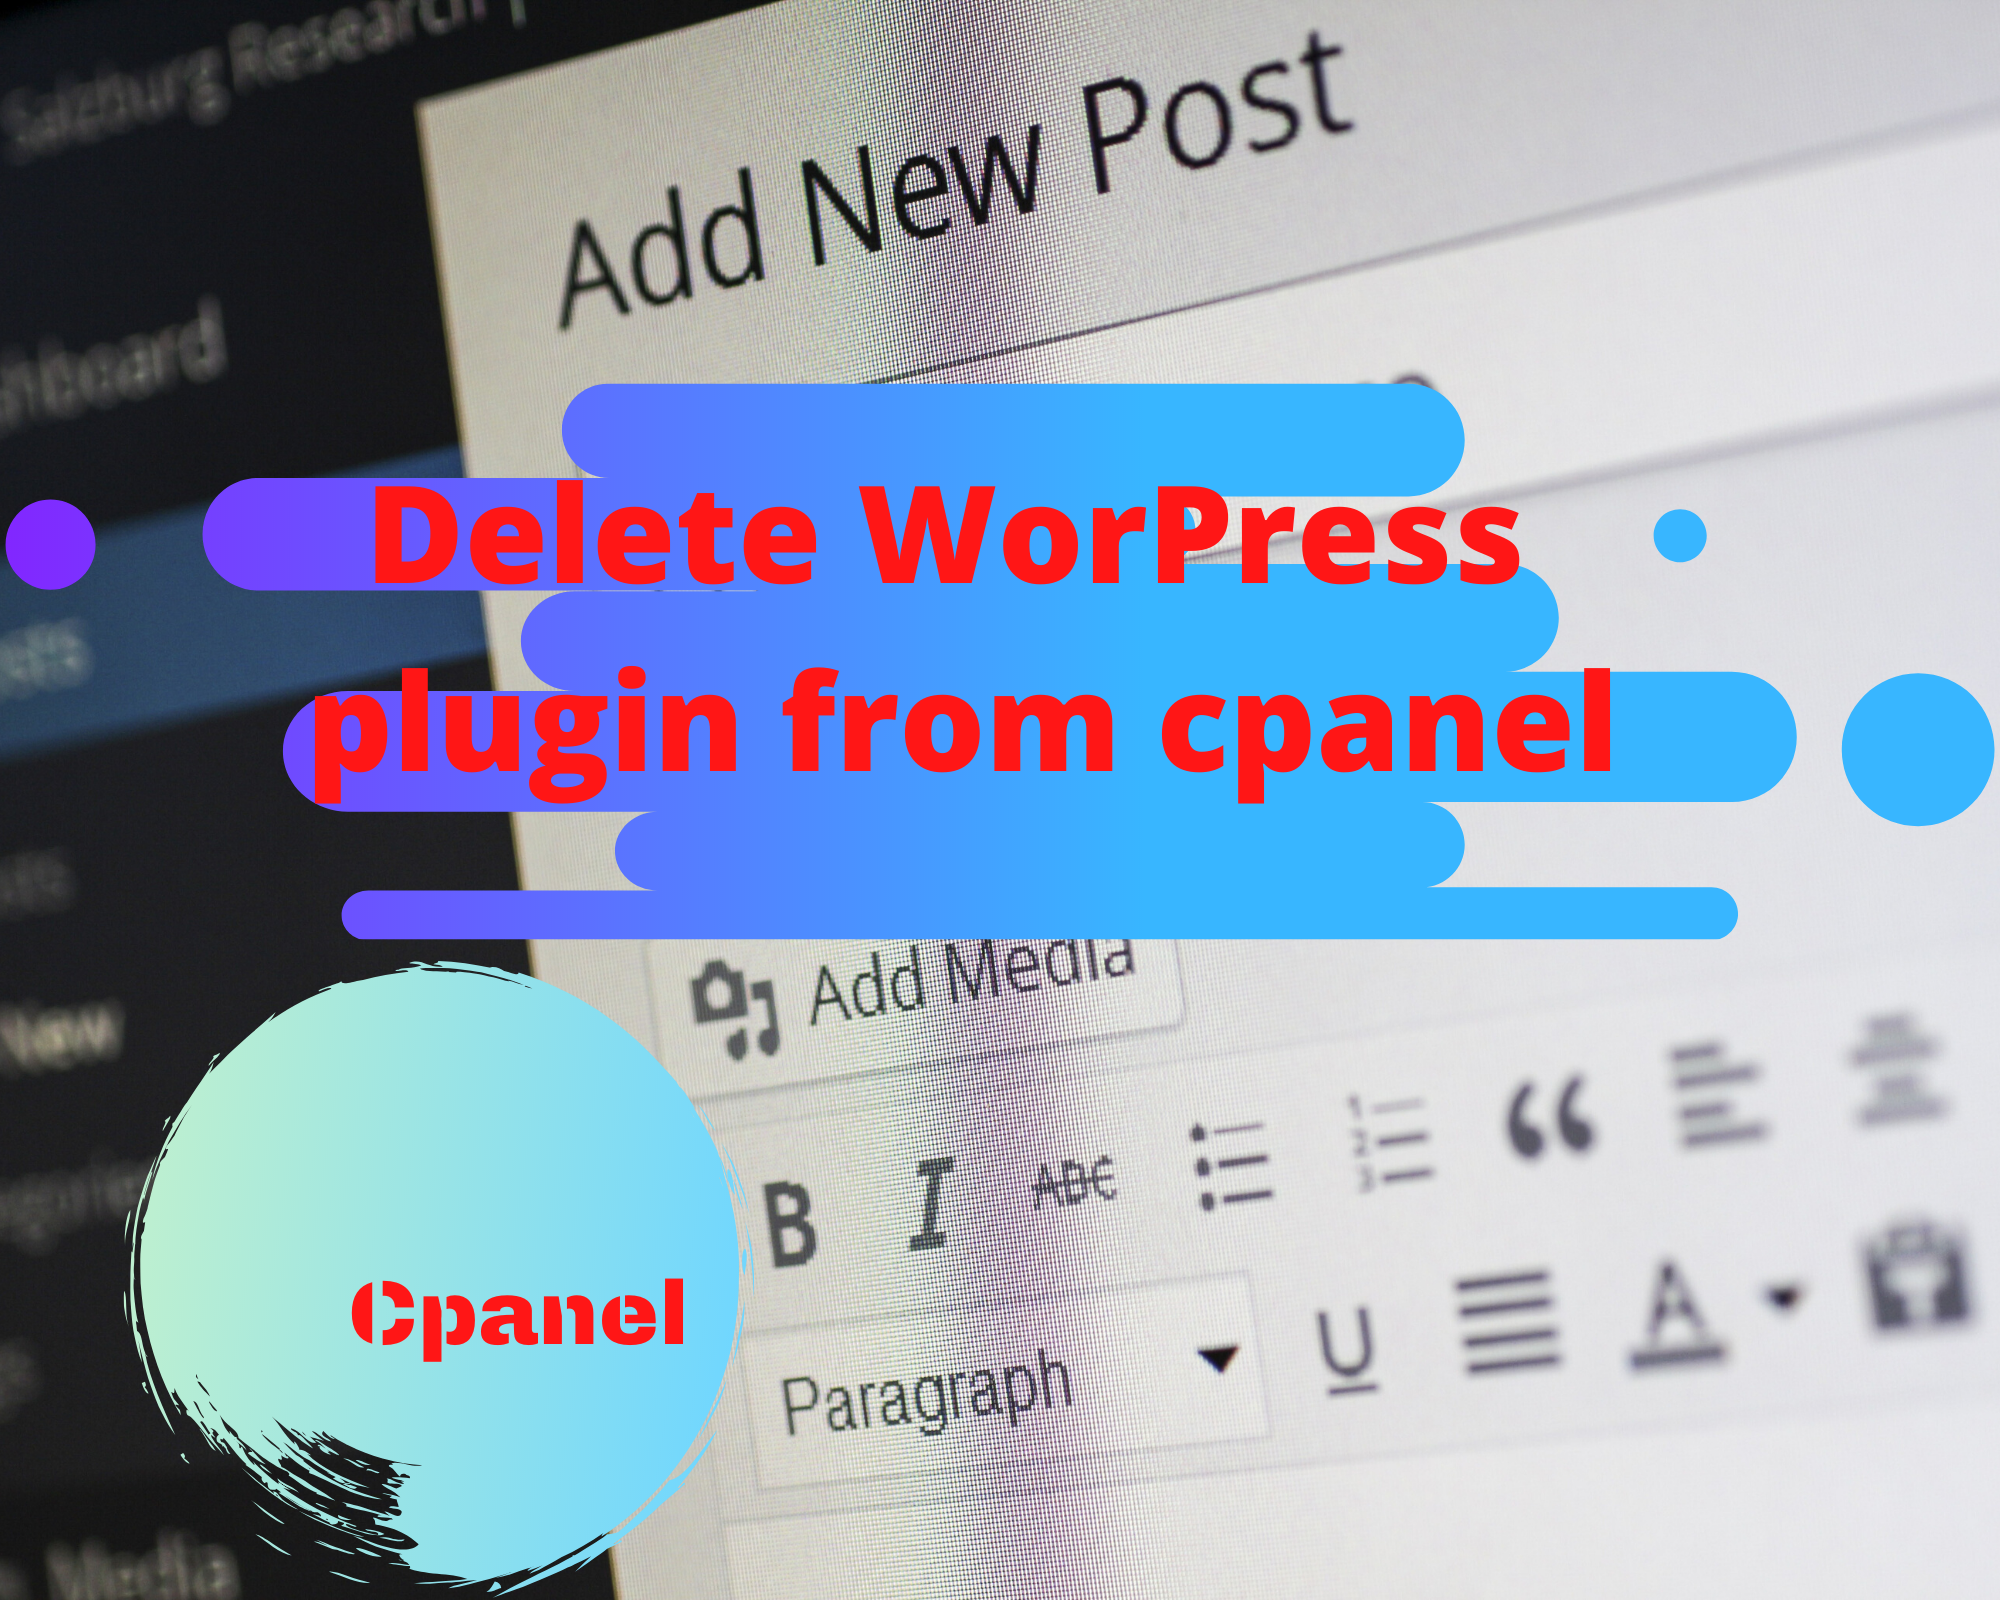 delete worpress plugin from cpanel